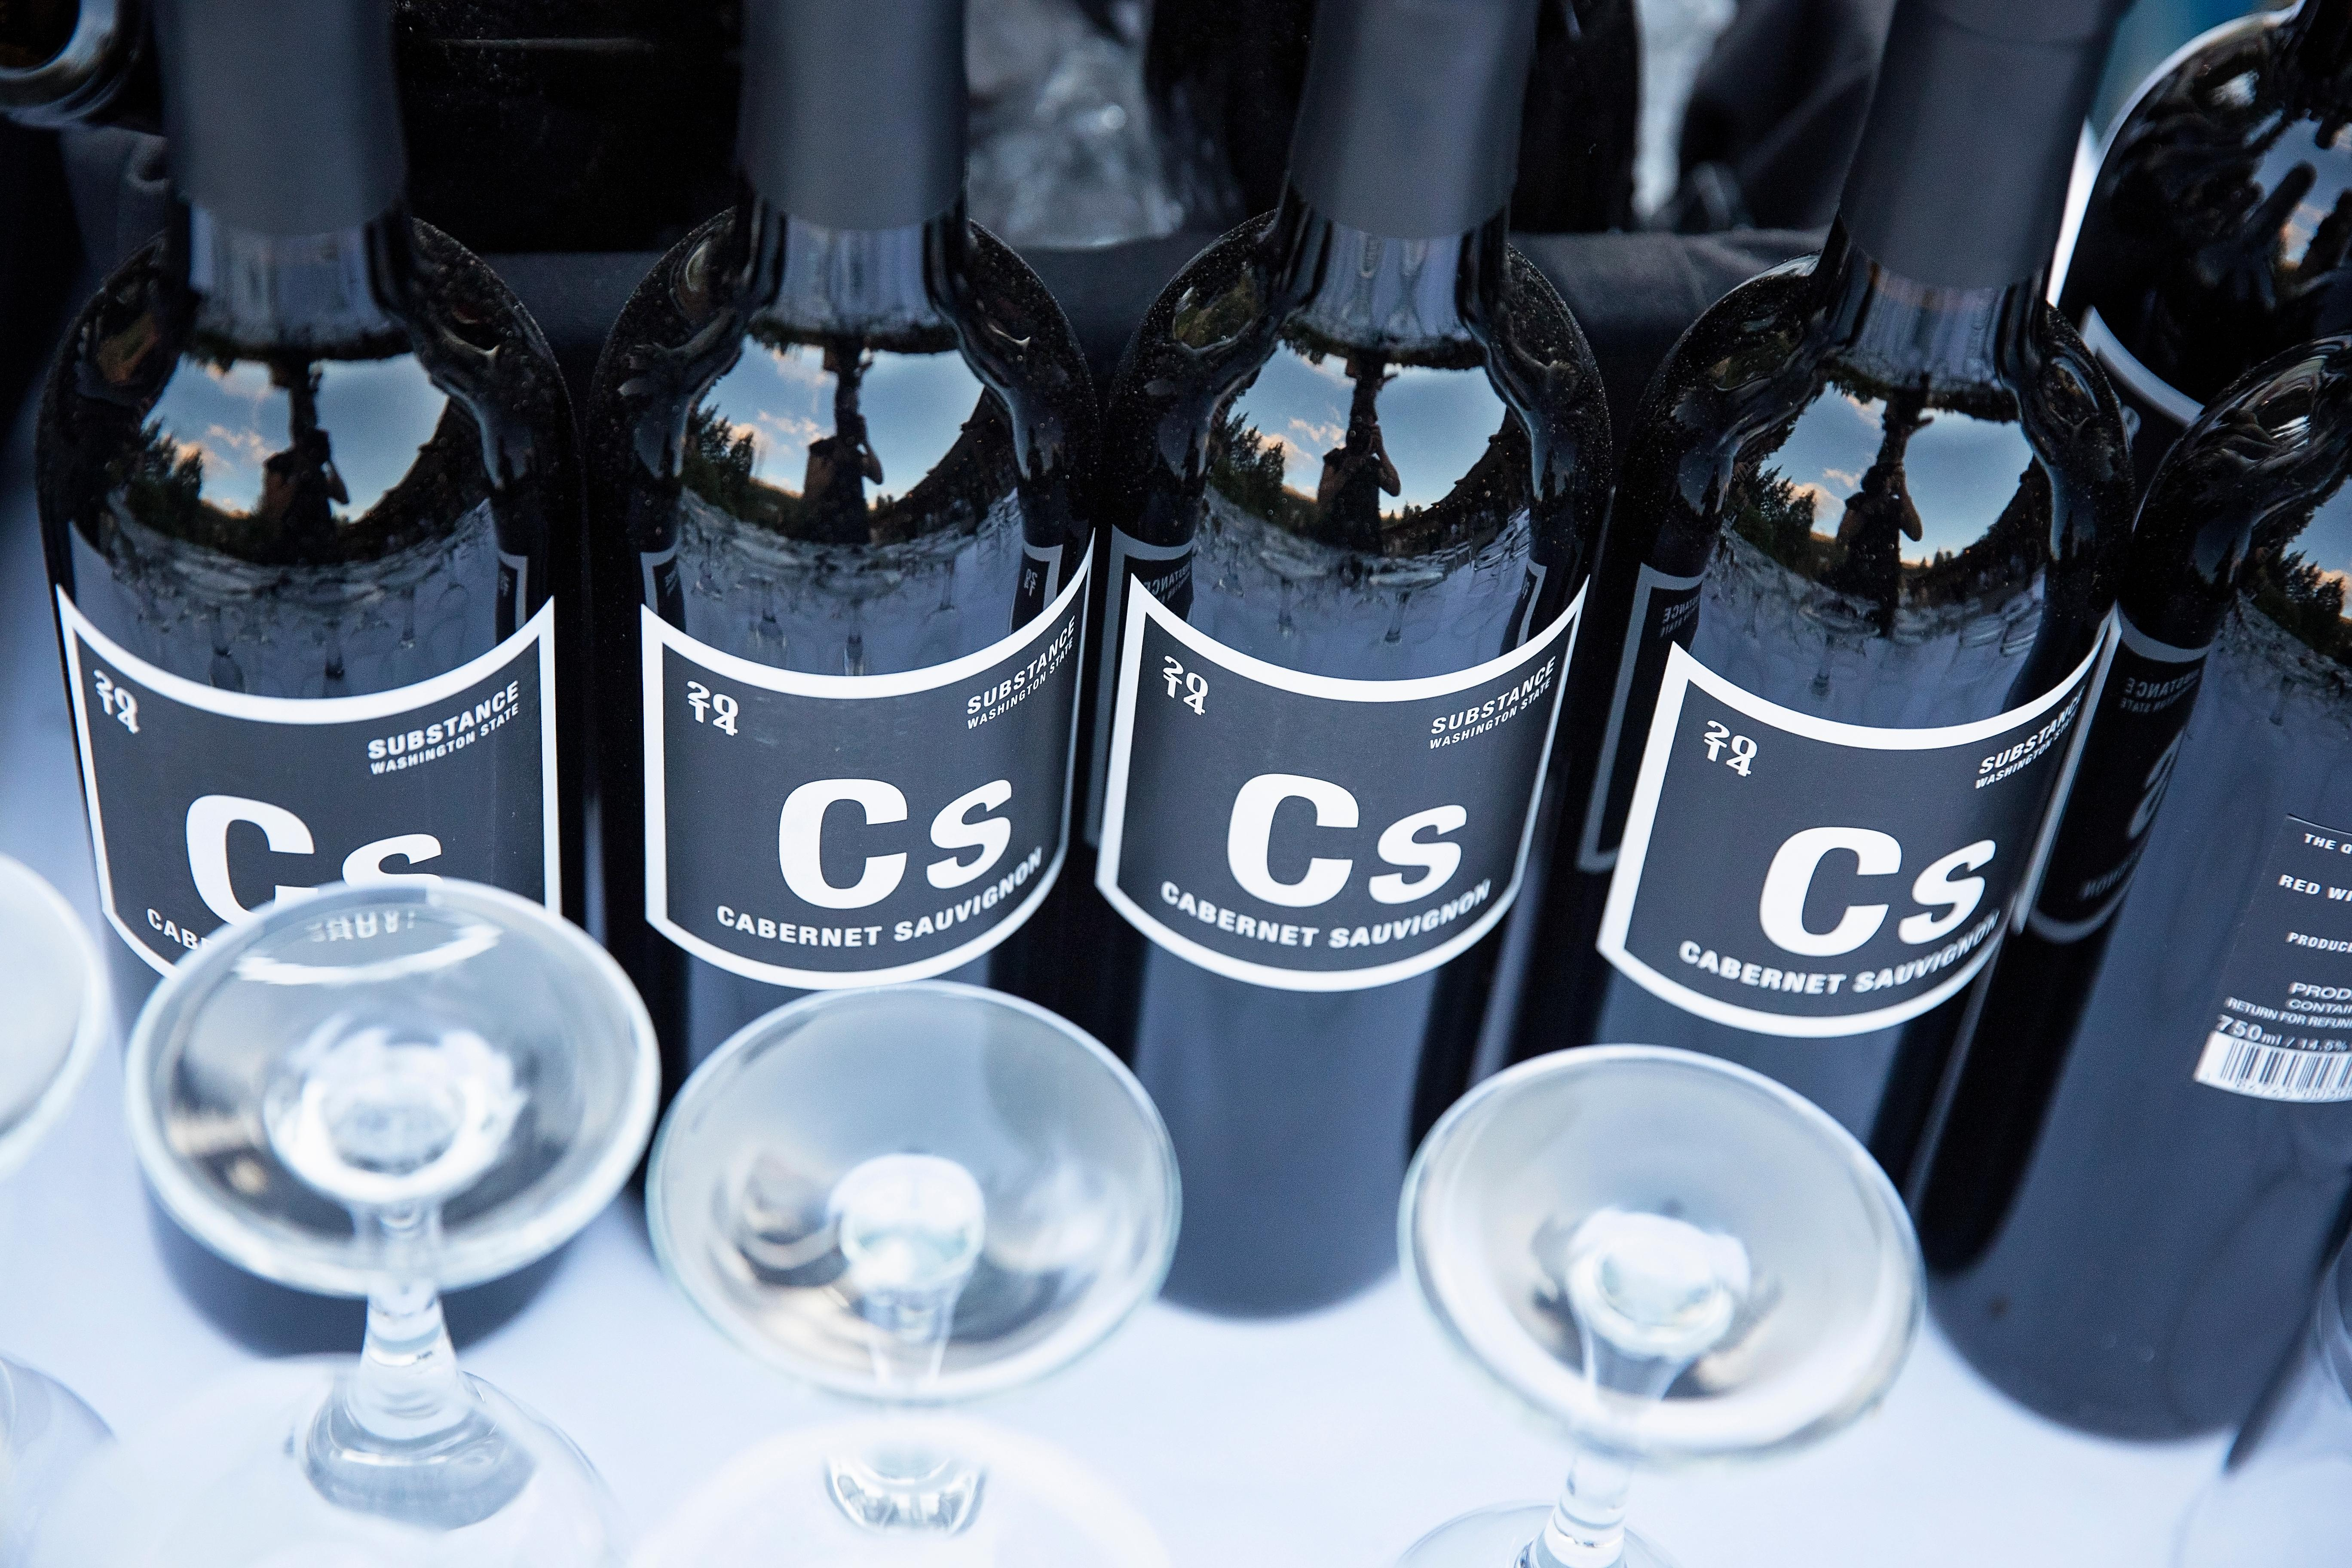 Substance Cabernet Sauvignon from Charles Smith found at Jet City in Georgetown. (Image courtesy of{&amp;nbsp;}©GadboisPhotography)<p></p>